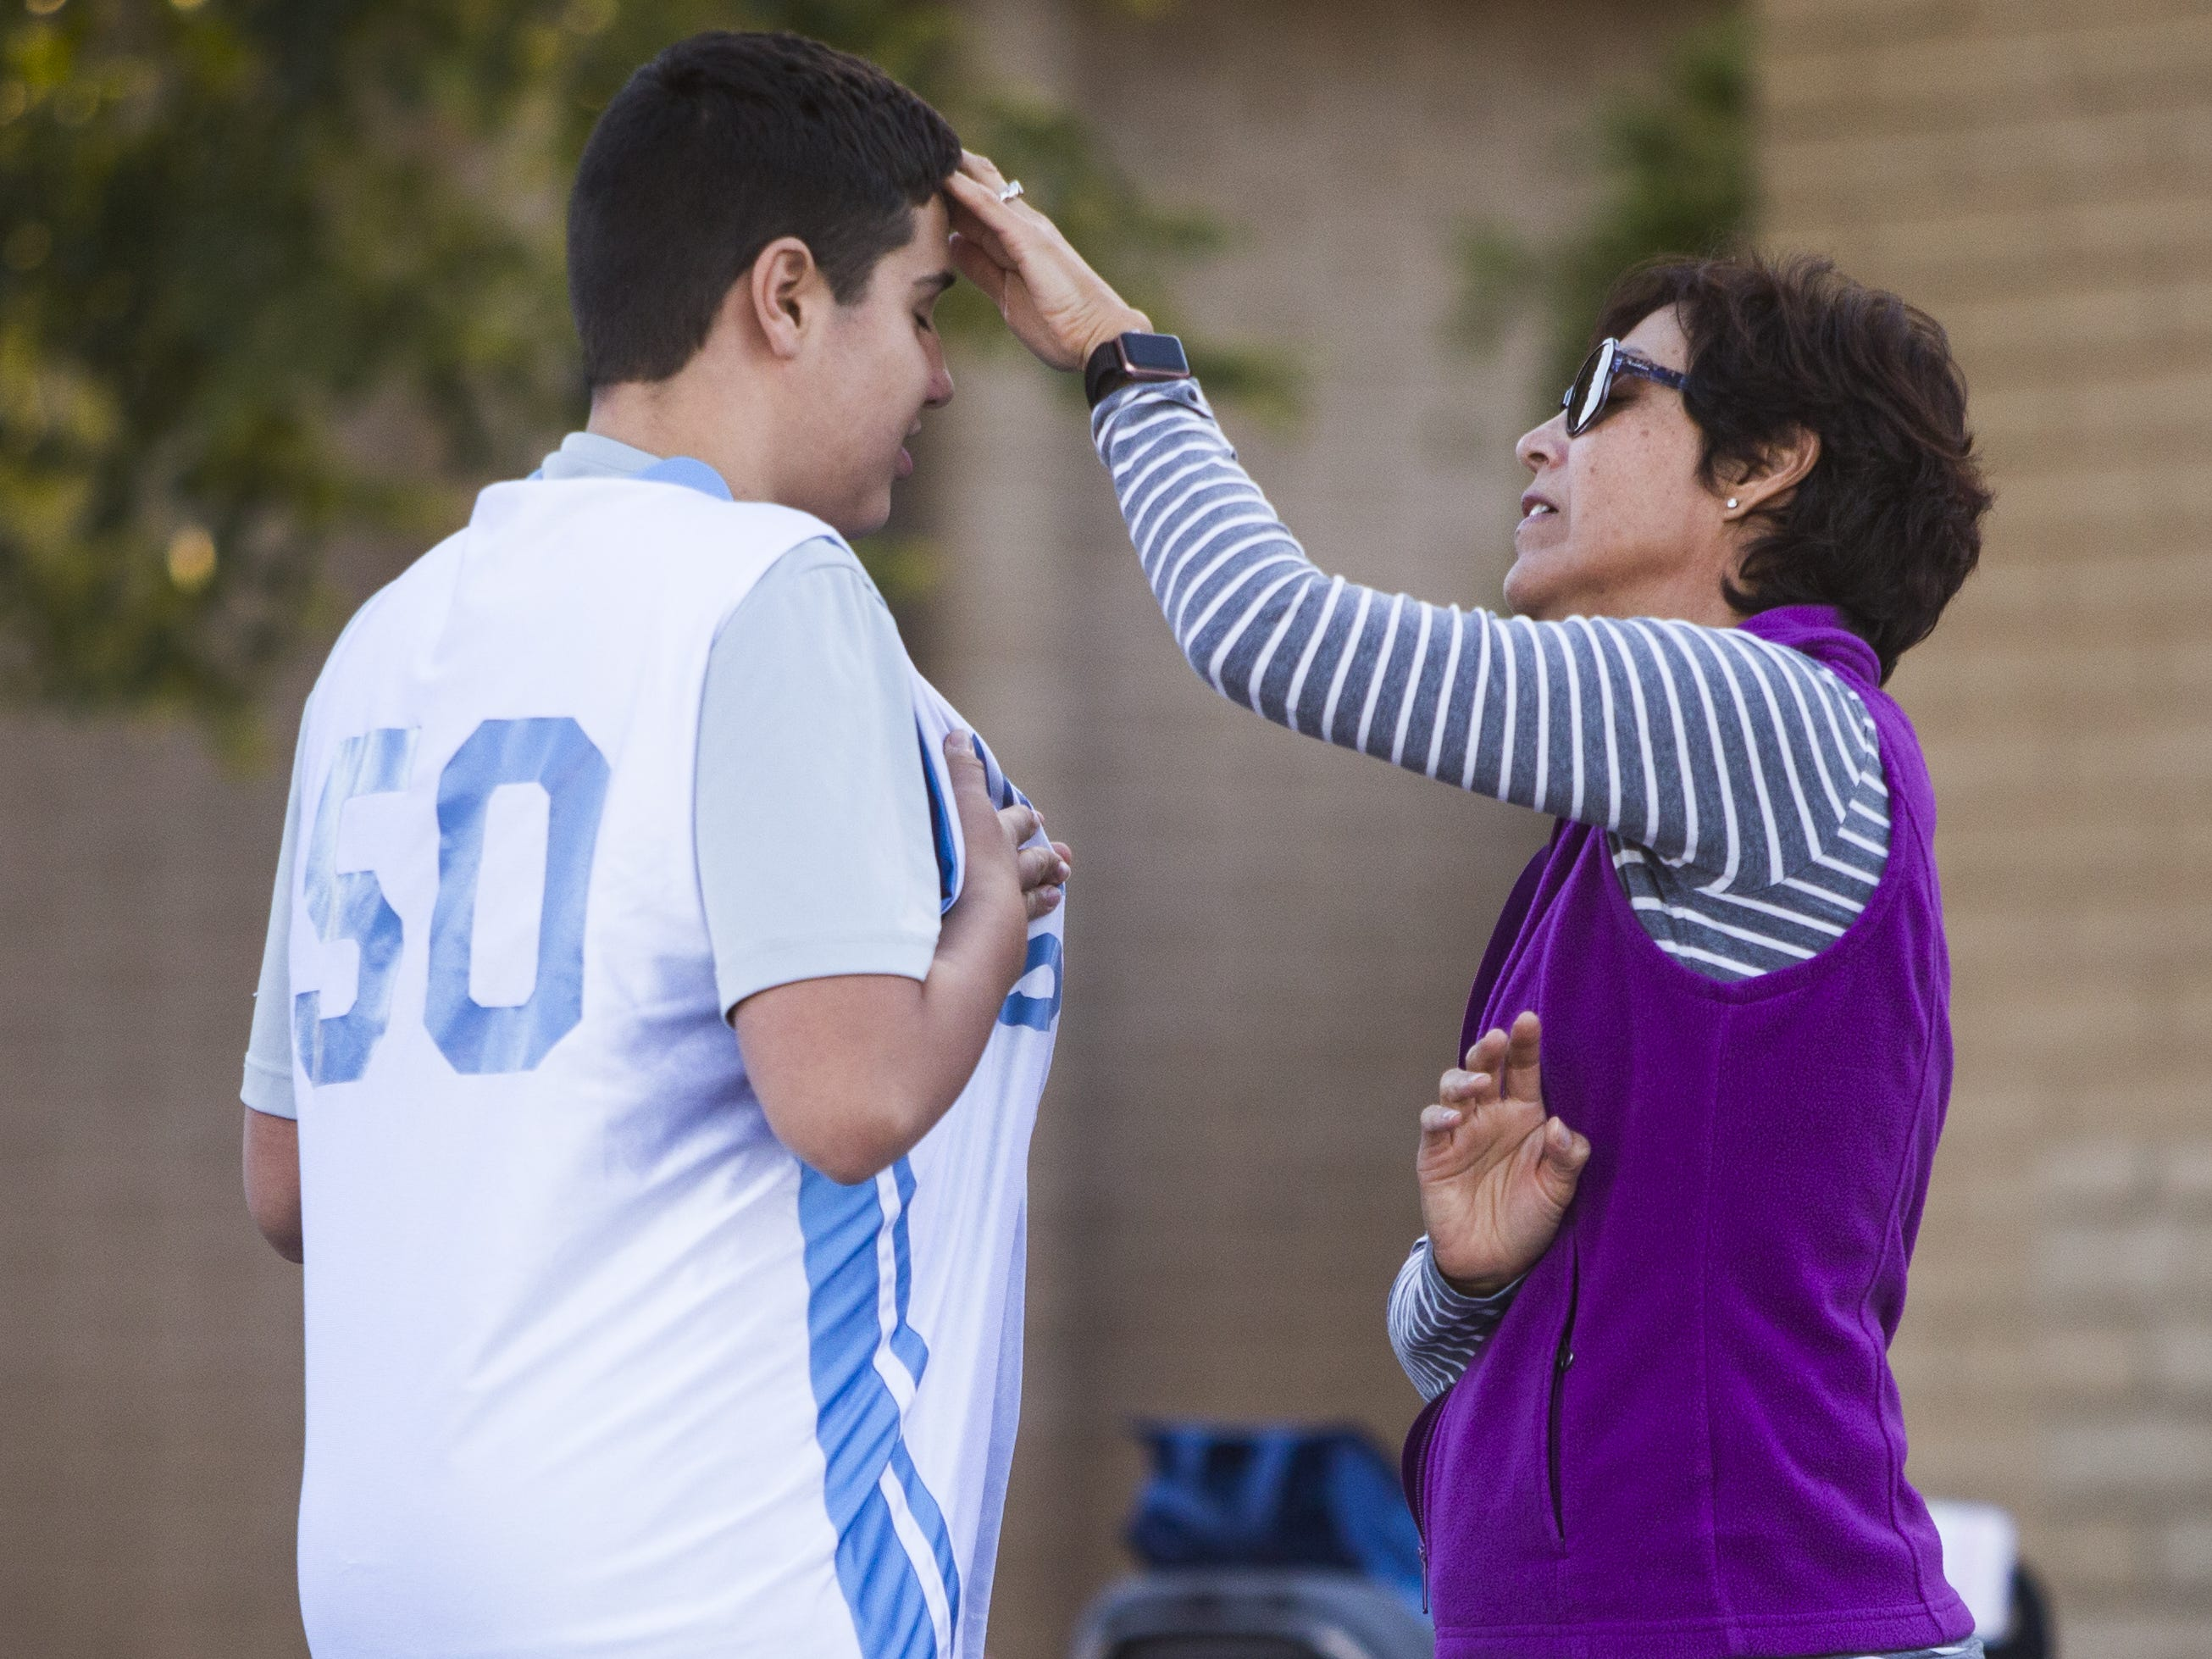 Luke Stockstad, who has autism, gets his hair brushed by his mom, Lisa Stockstad, before going in for his team, St. Mary-Basha Catholic School, as they play St. John Bosco, Tuesday, November 27, 2018.